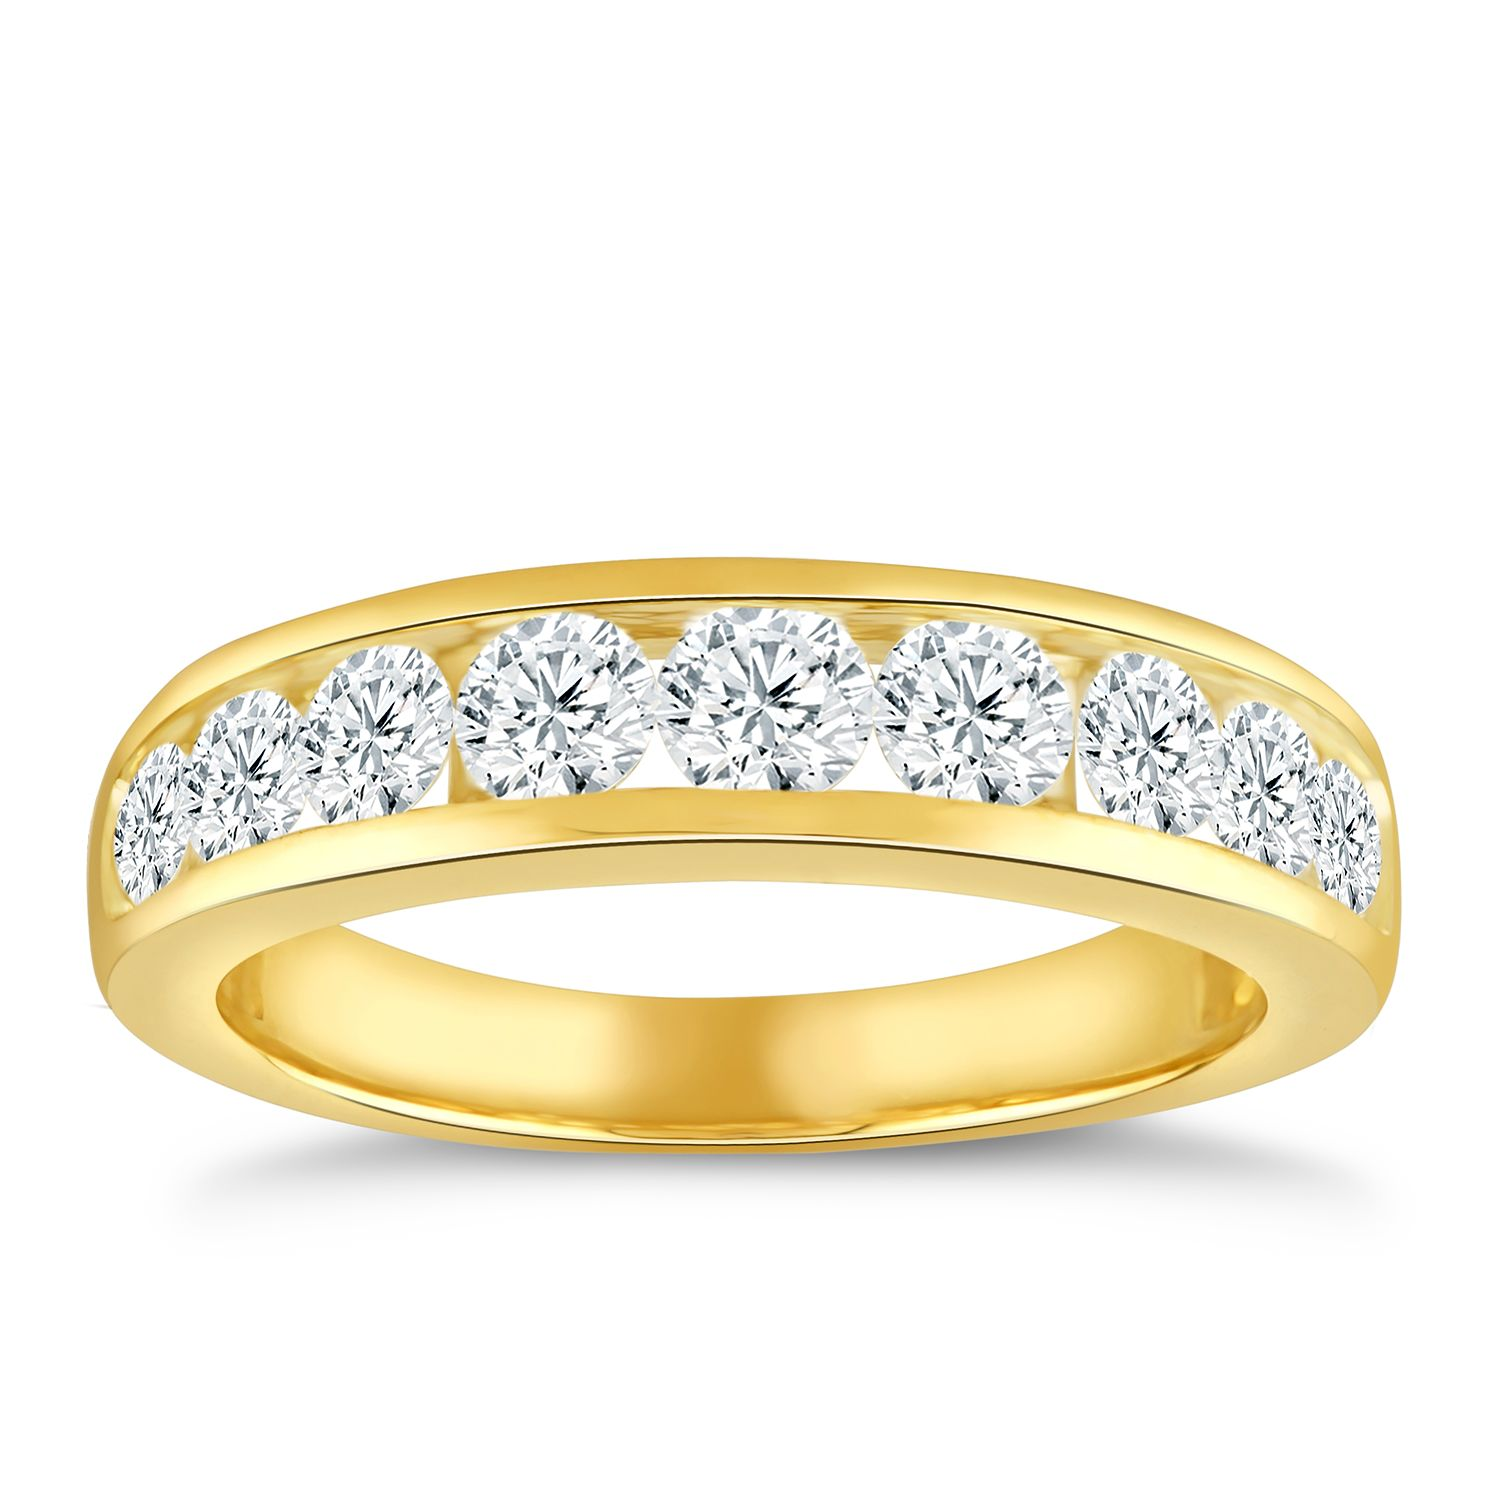 9ct Yellow Gold & 1ct Diamond Eternity Ring - Product number 5060044